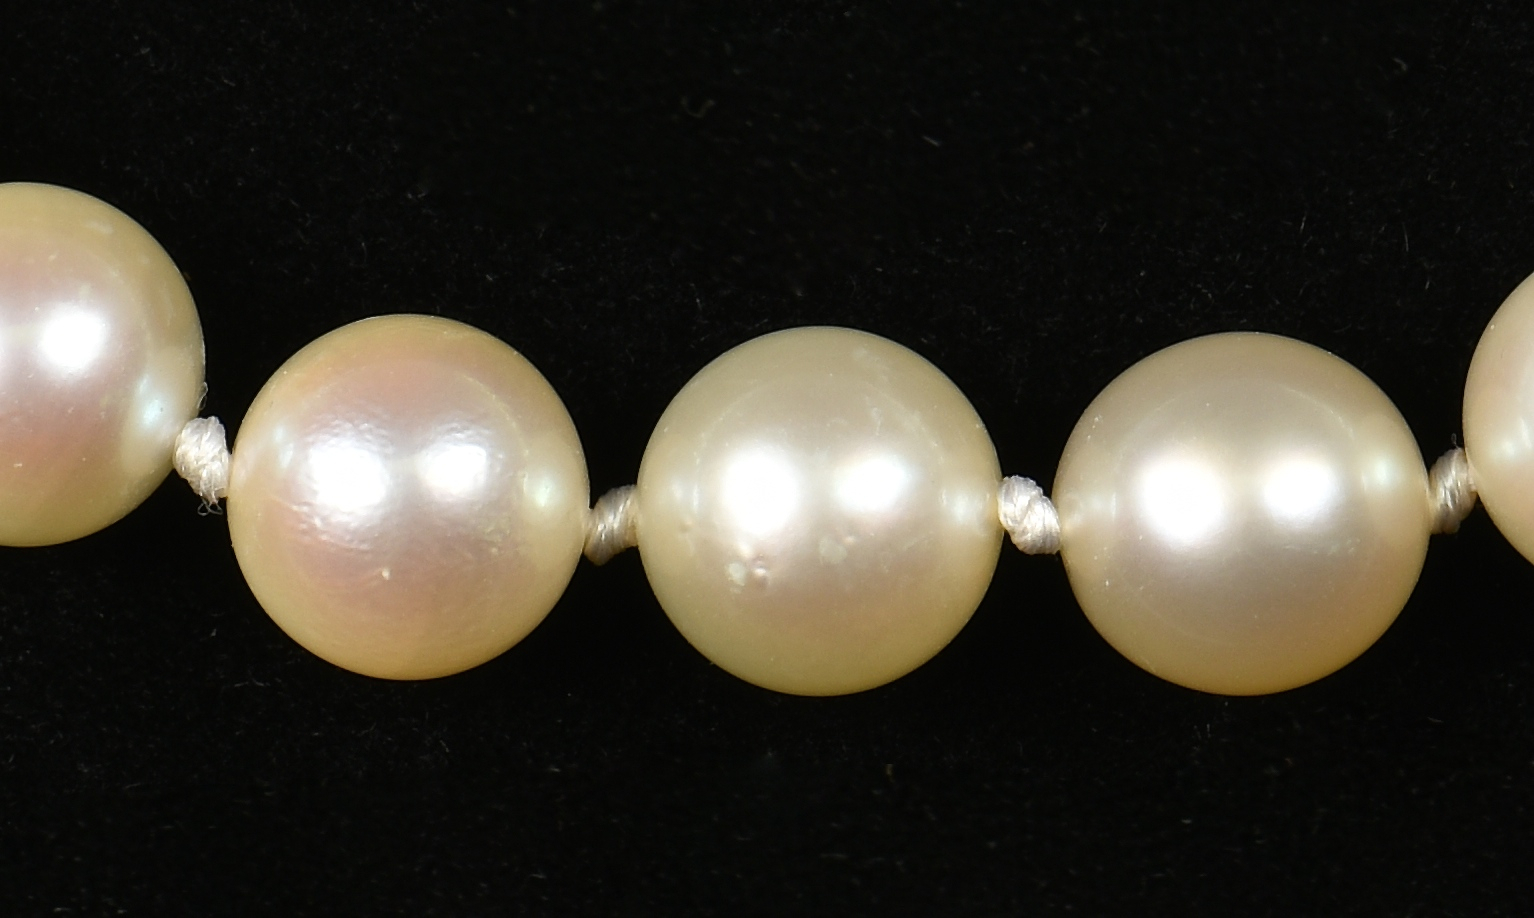 Lot 952: 2 Pearl Necklaces w/ 14K Gold Clasps